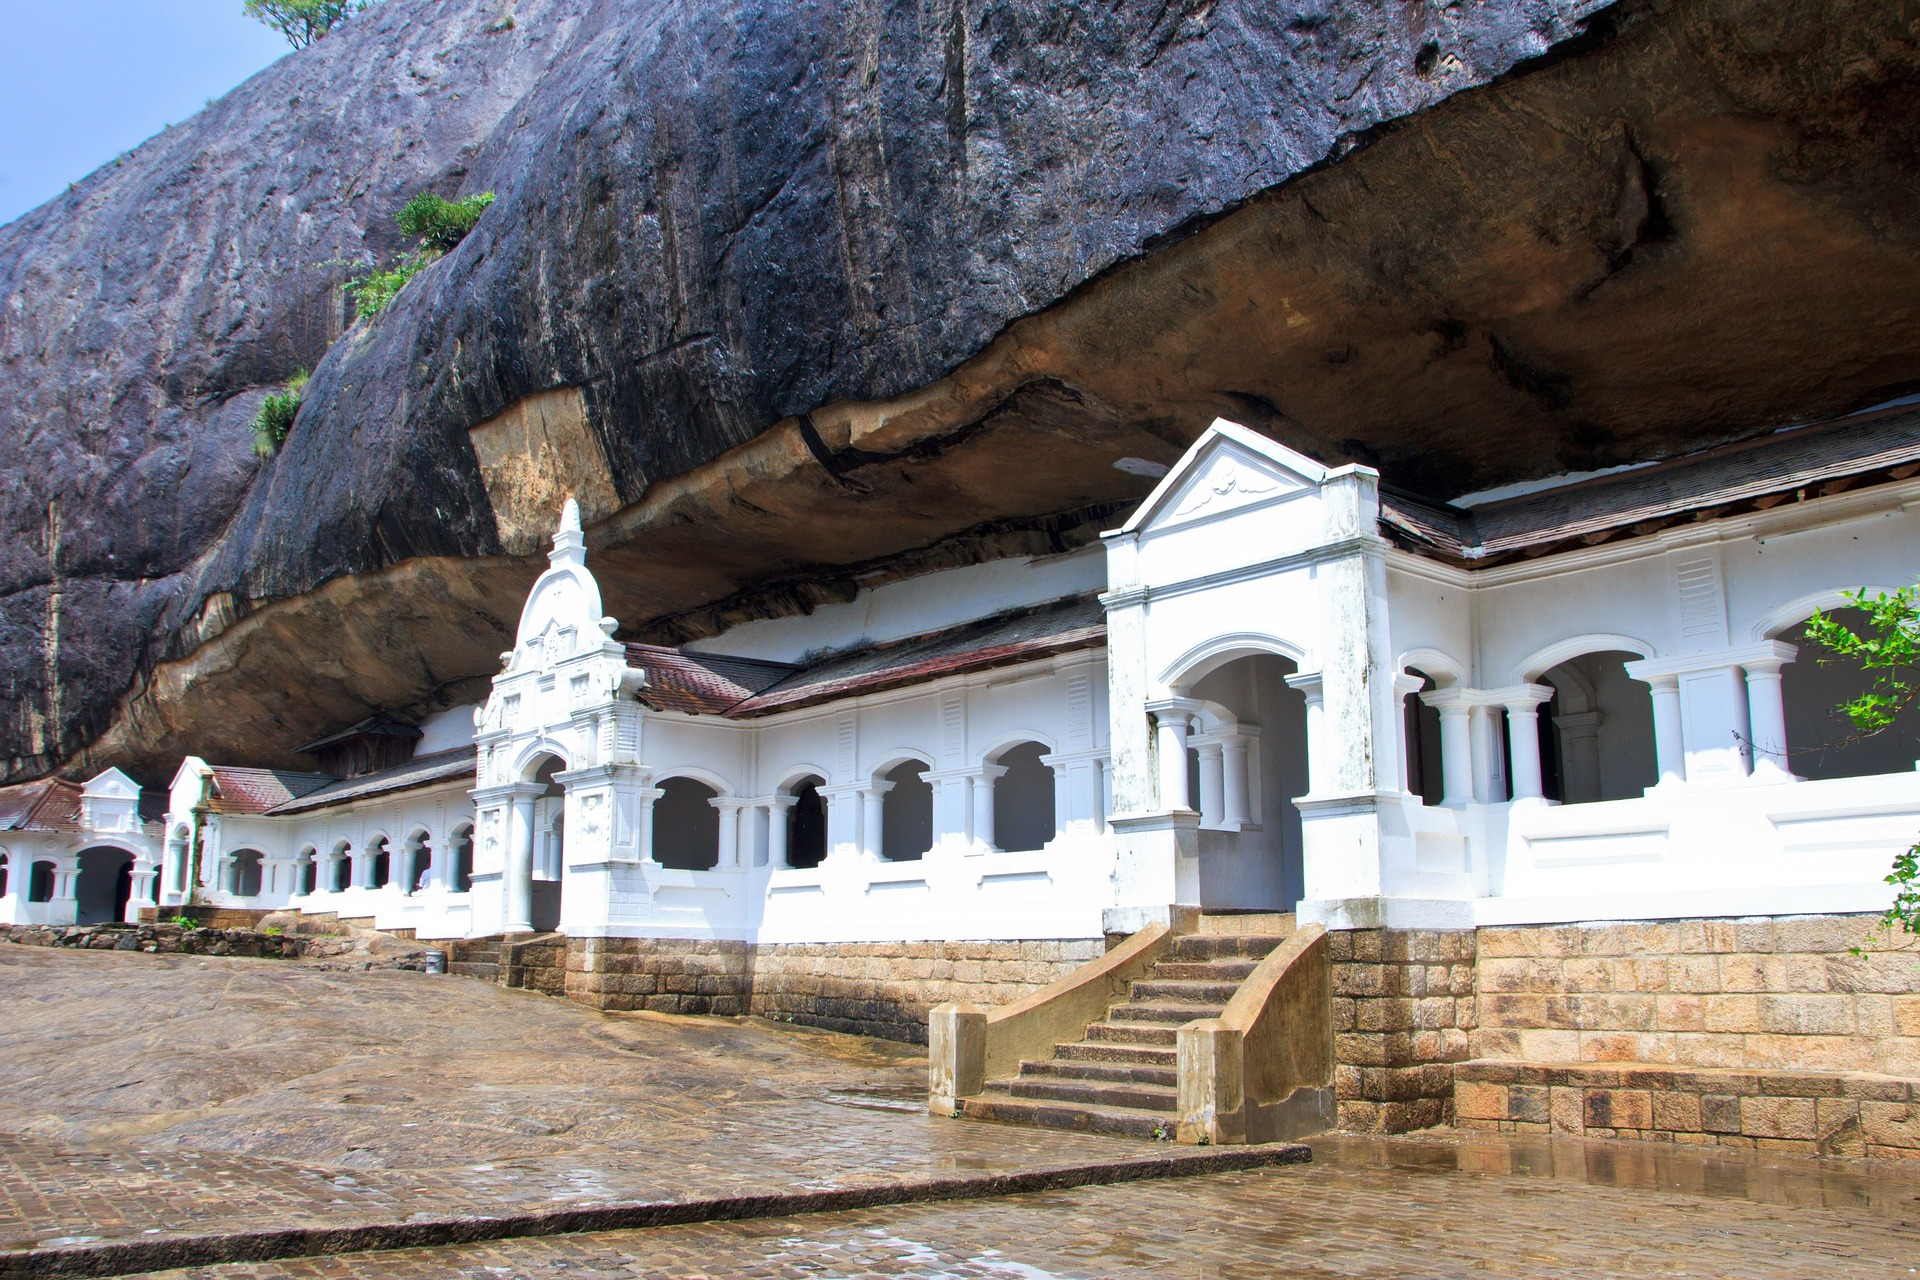 dambulla : temple d'or